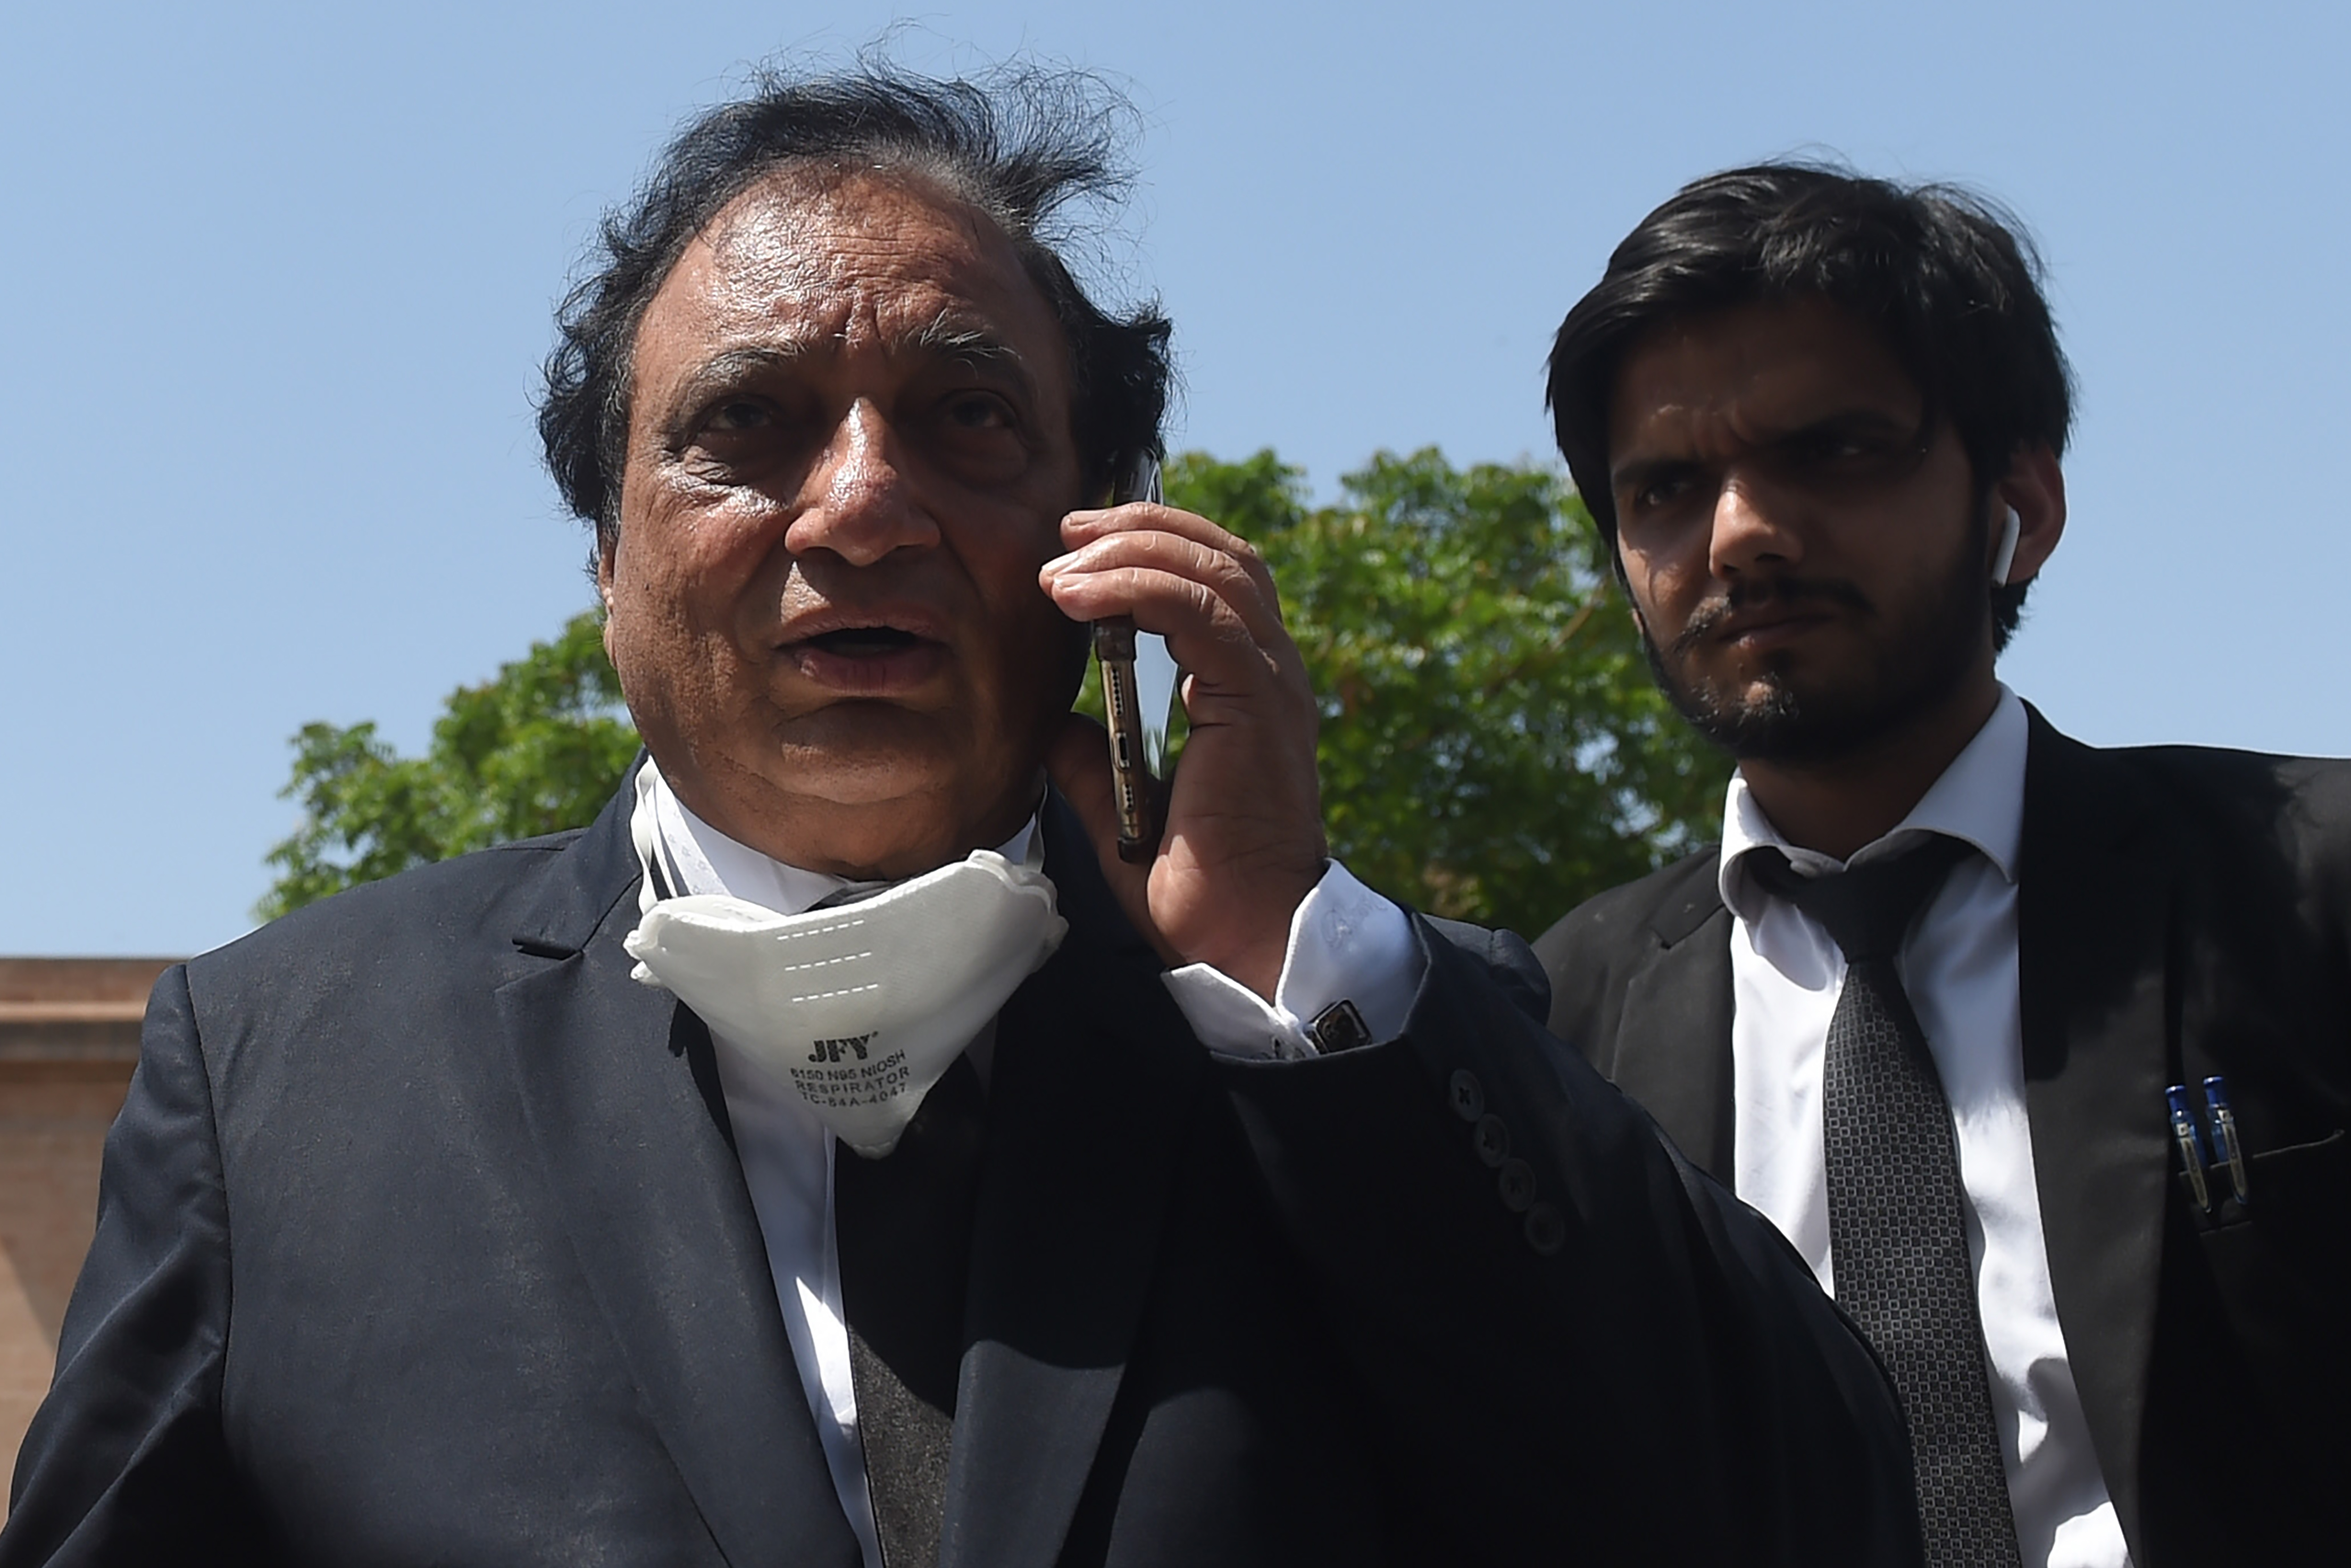 Khawja Naveed (L), defence lawyer of Omar Sheikh, who was convicted to death sentence over the killing of US journalist Daniel Pearl, speaks on his cellphone outside the High Court builiding in Karachi(Photo by ASIF HASSAN/AFP via Getty Images)